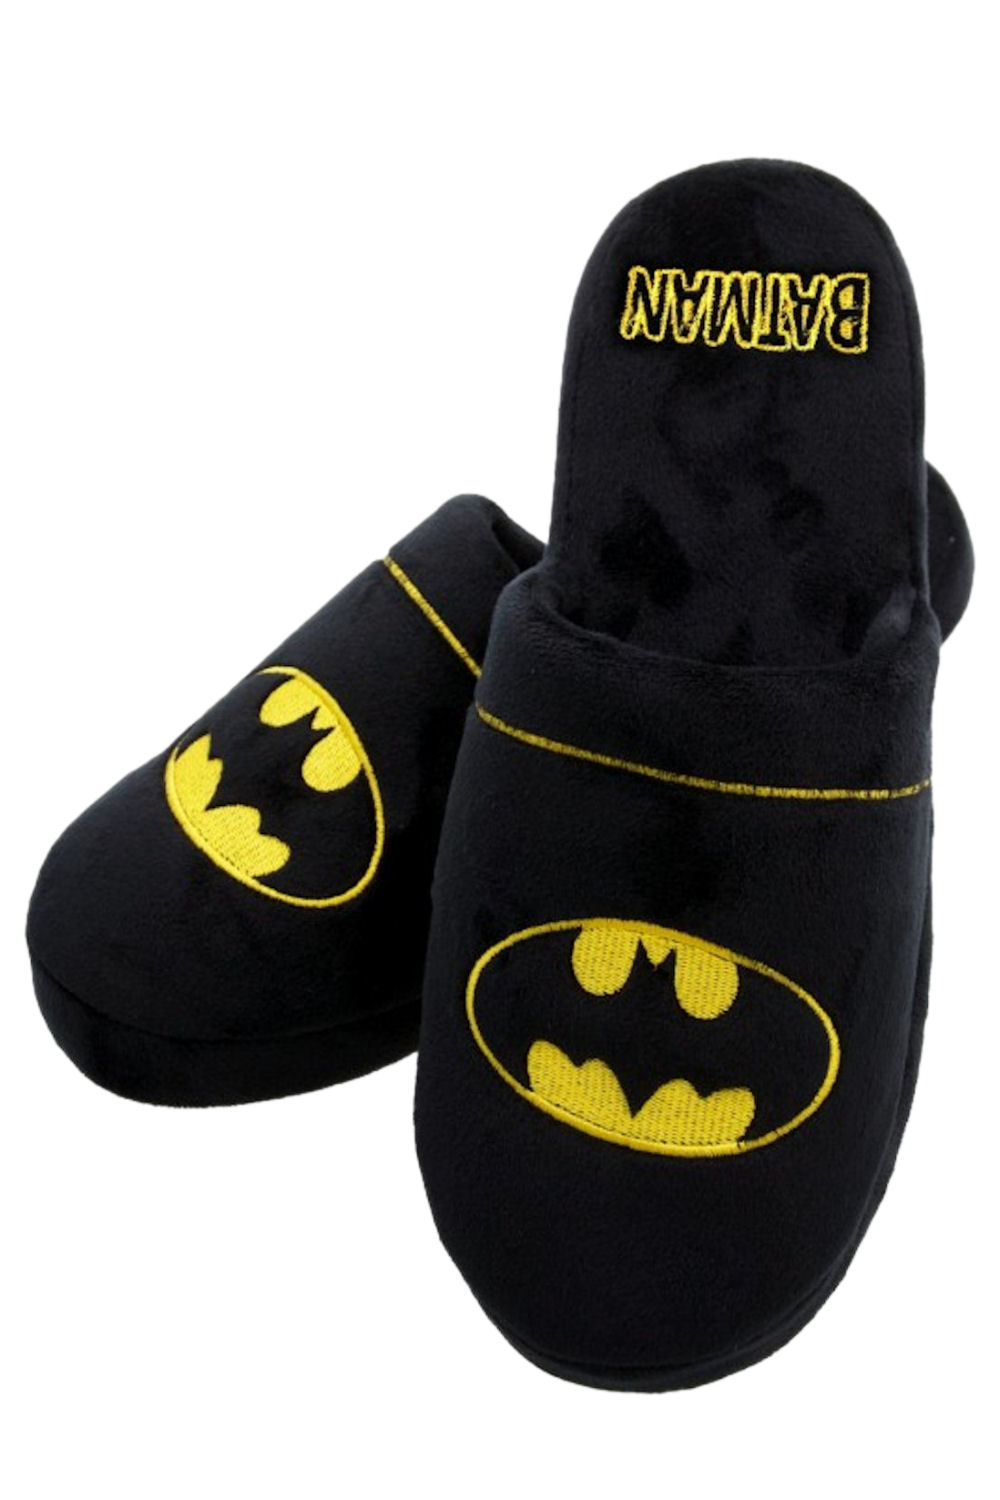 59e5c6e13369 Official Batman DC Comics Superhero Soft Plush Kids Mens Slip On ...